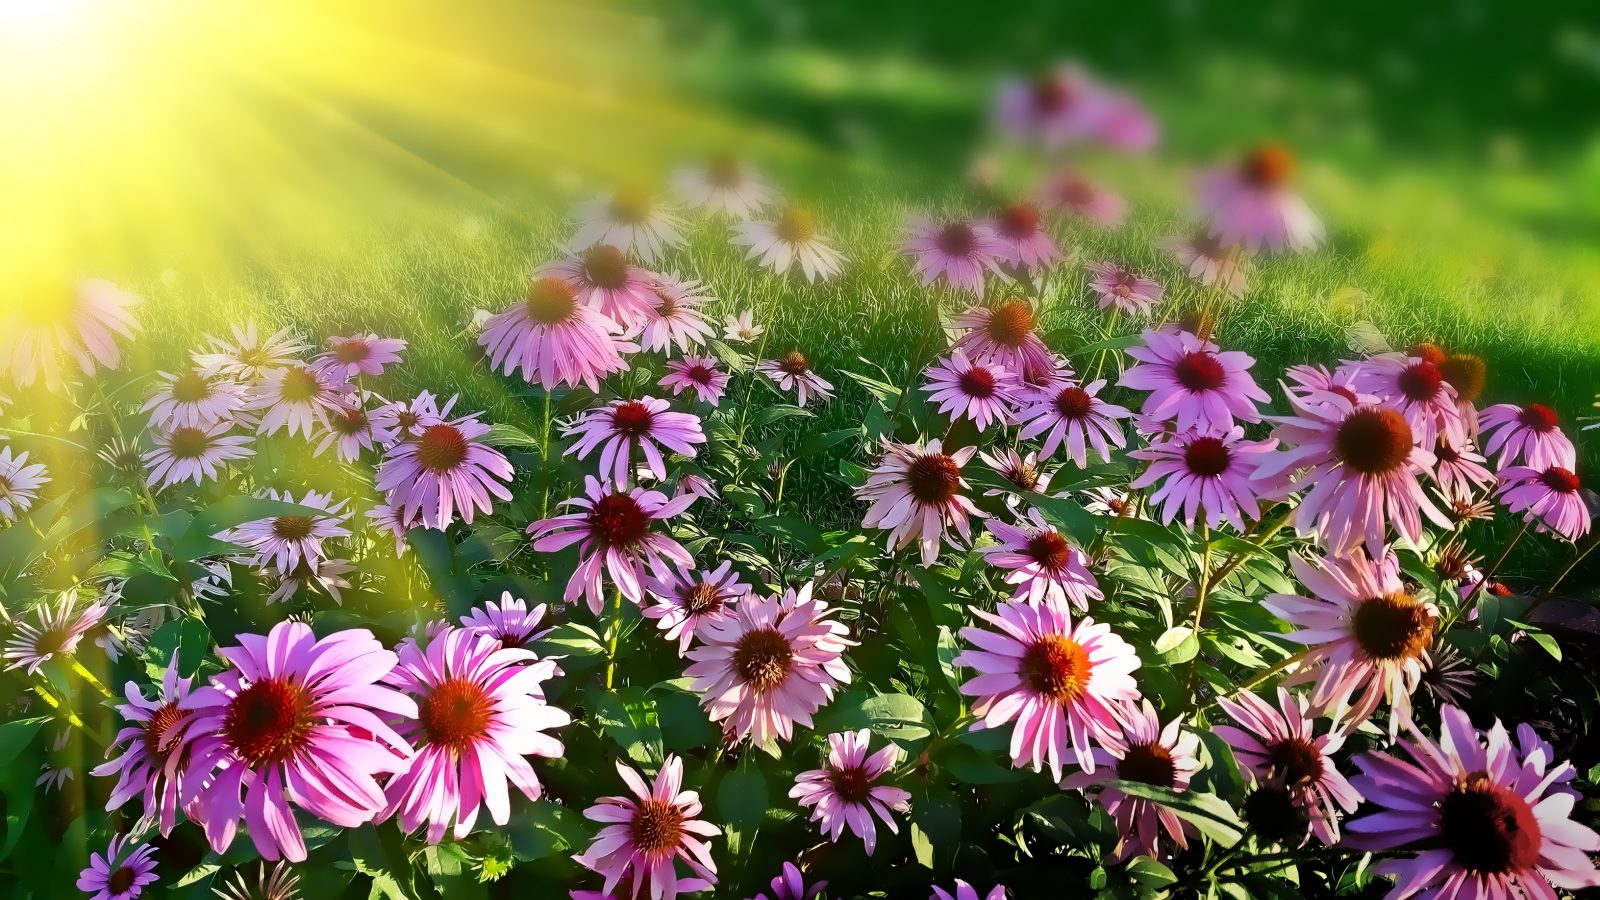 Pink flowers in the sunlight